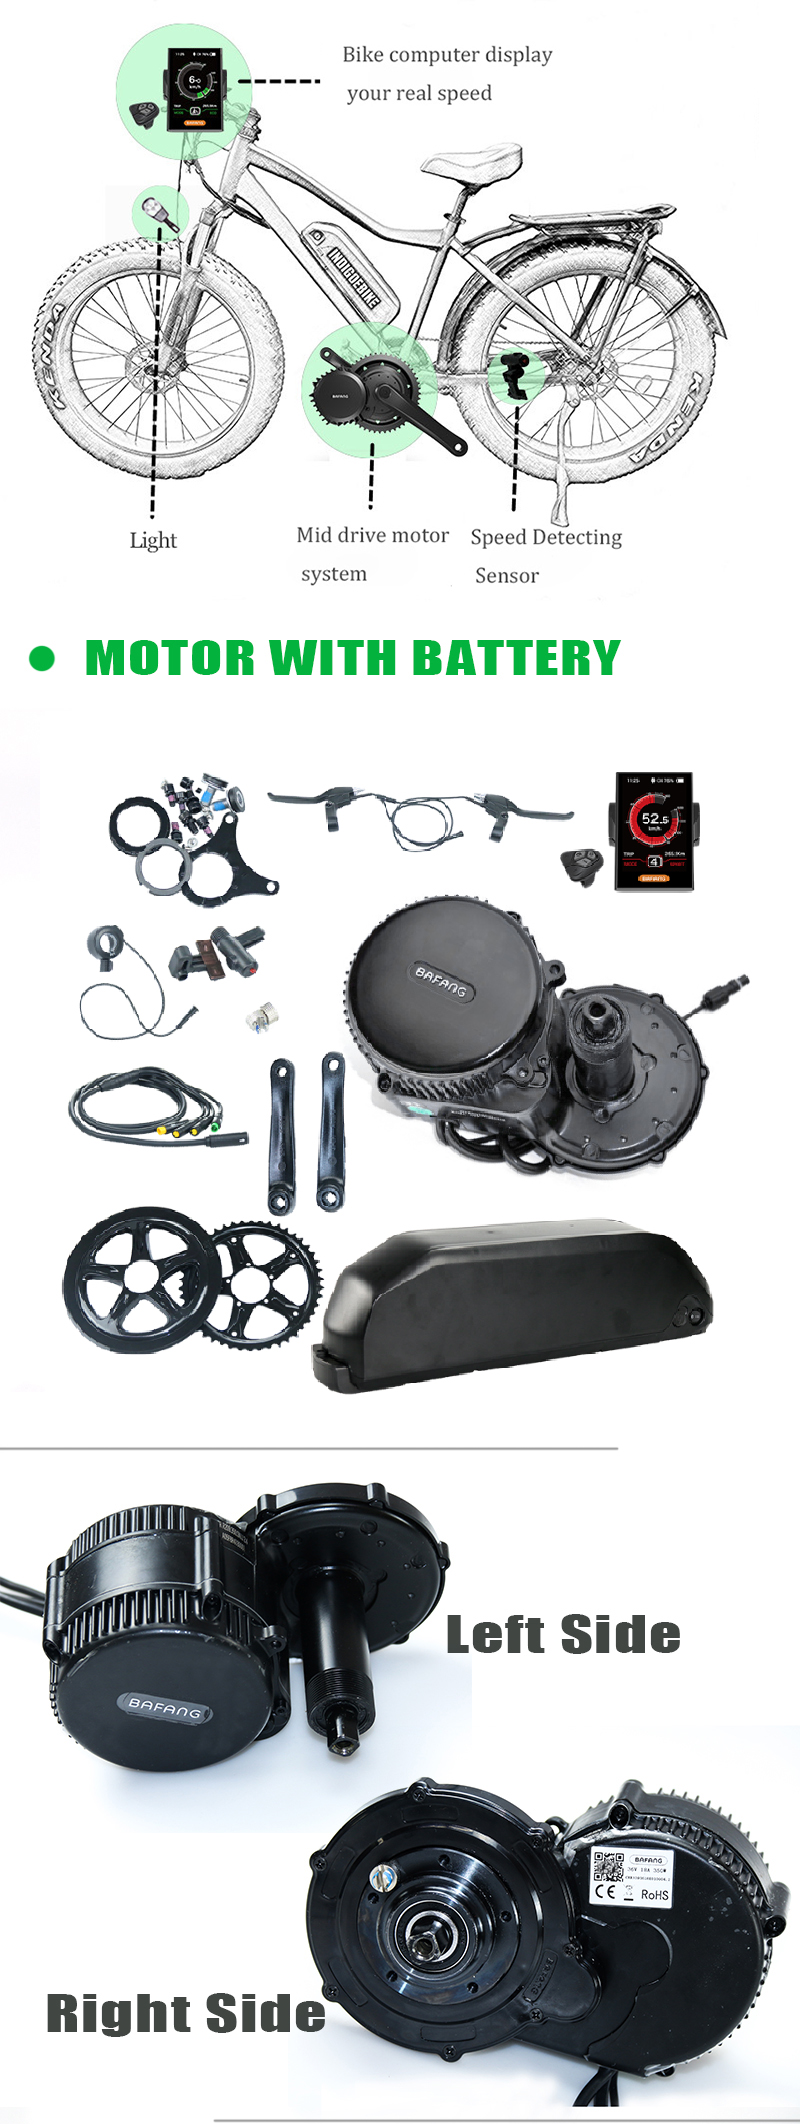 Sale Bafang Mid Drive Kit Electric Motor 36V 500W Bafang BBS02 Motor E-bike Kit with Electric Bike Battery Kit 36V 13AH Bike Battery 3